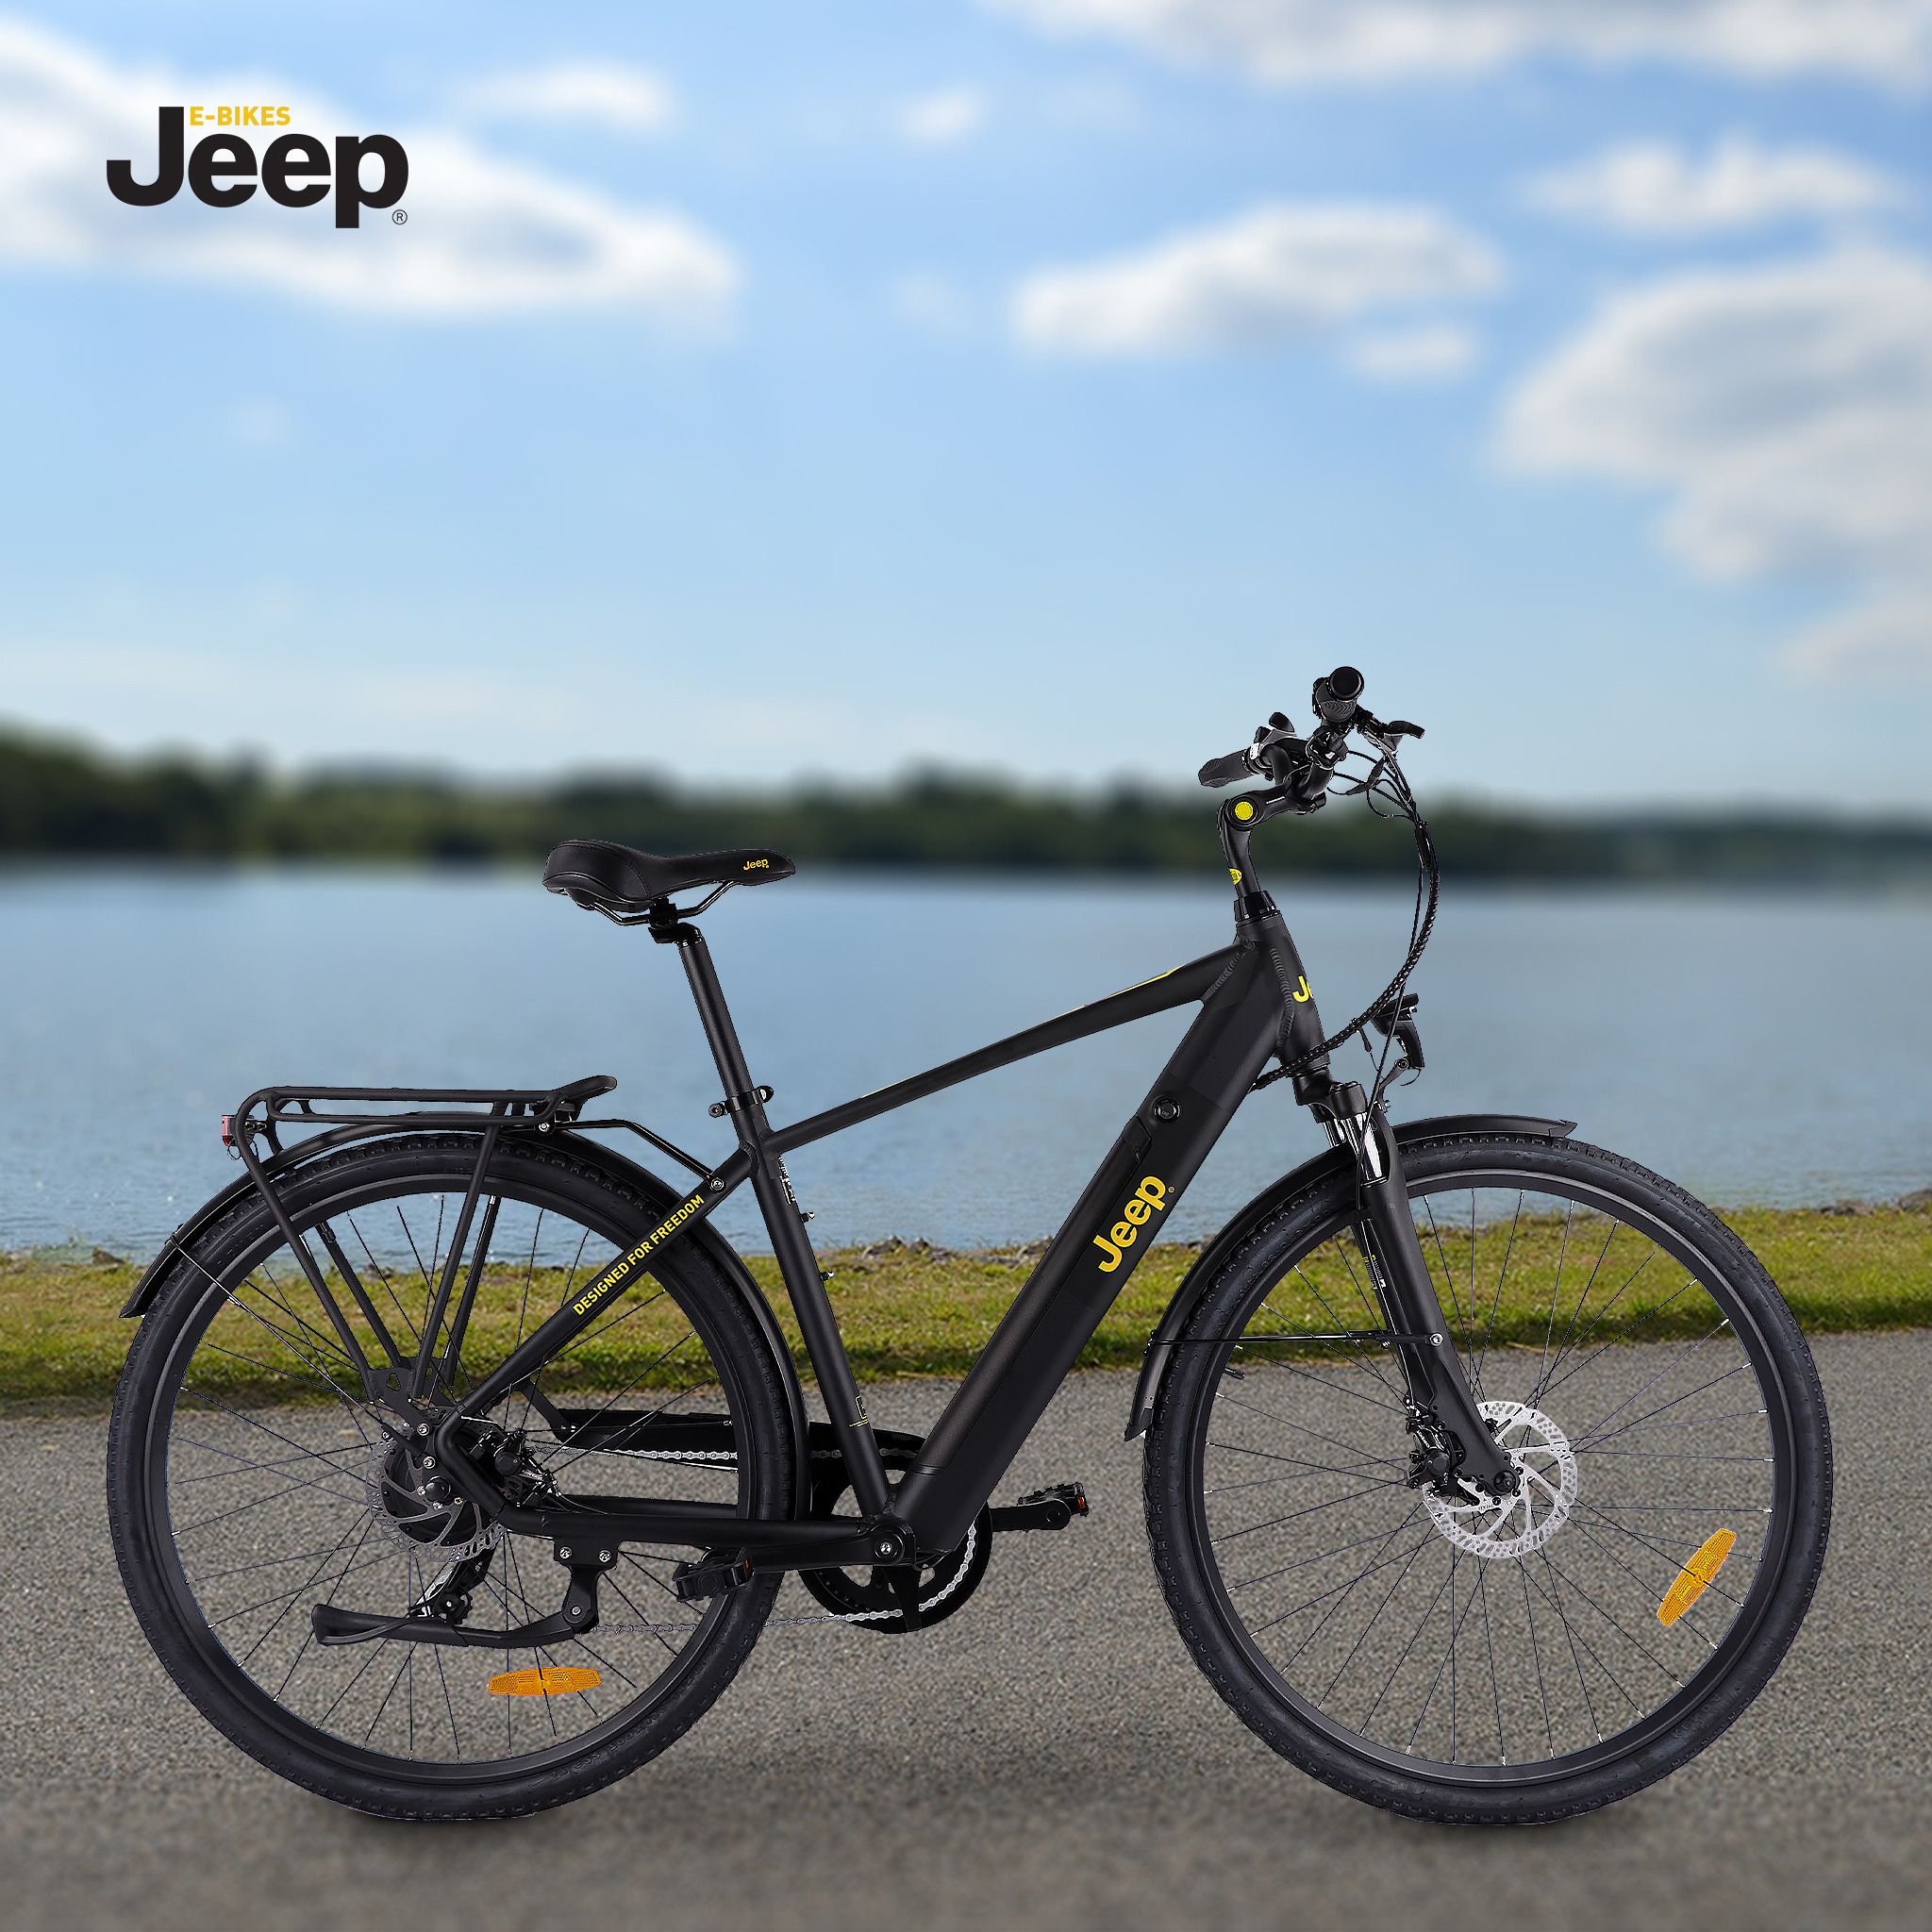 PI vom 01.09.2020 | Jeep Trekking E-Bike